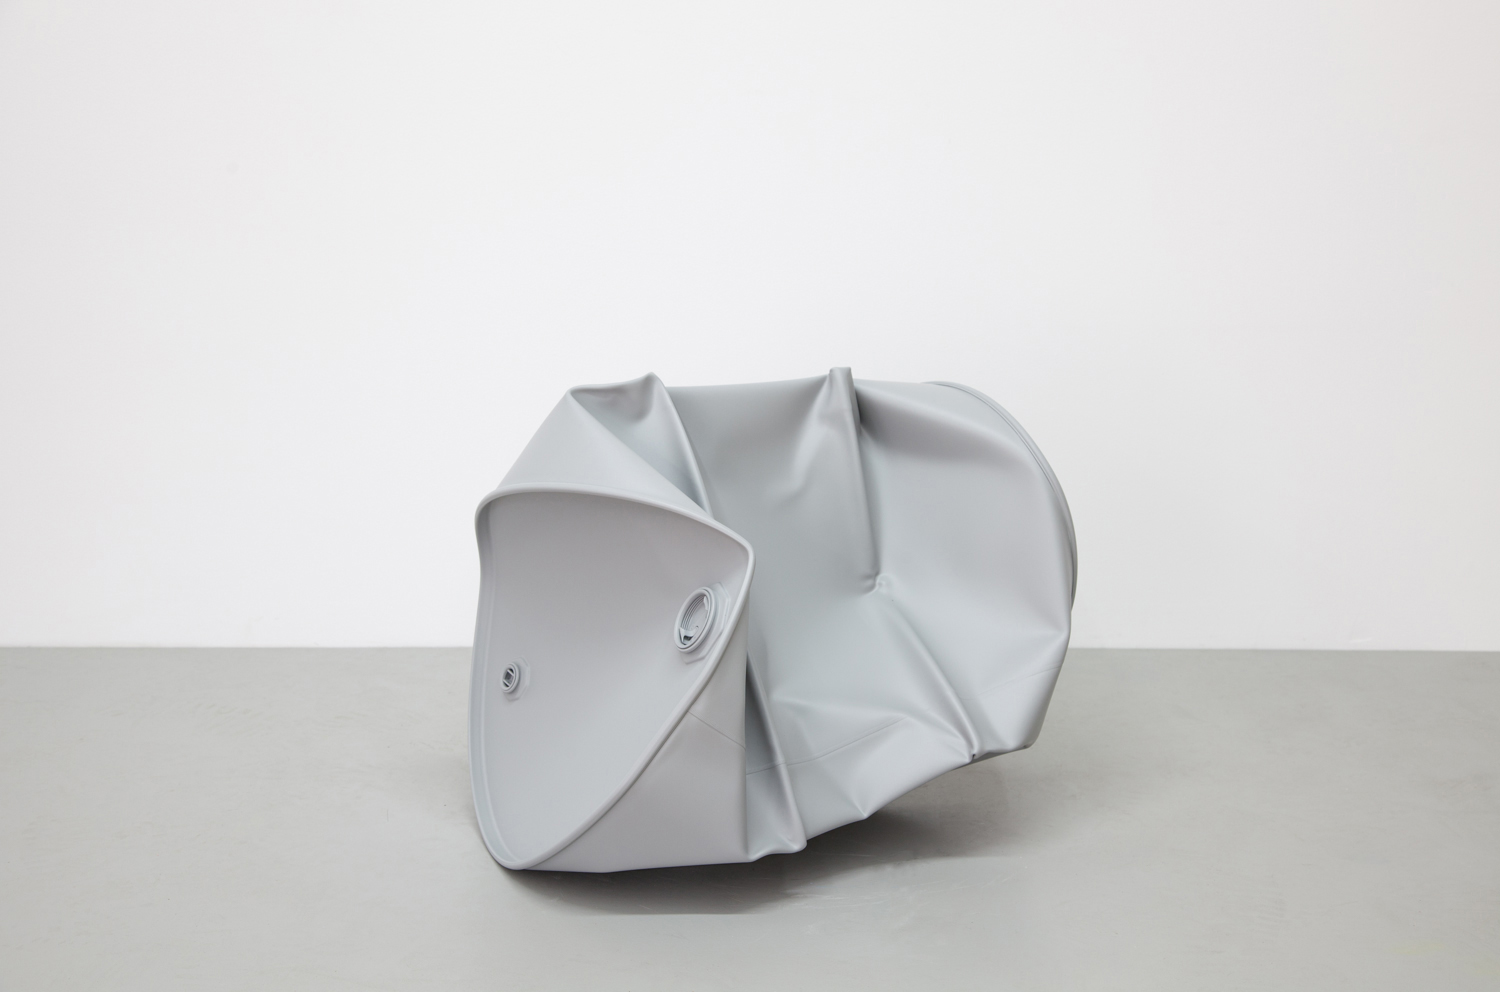 Knocked Down, 2013  , acrylic on steel, 20 1/2 x 18 3/4 inches